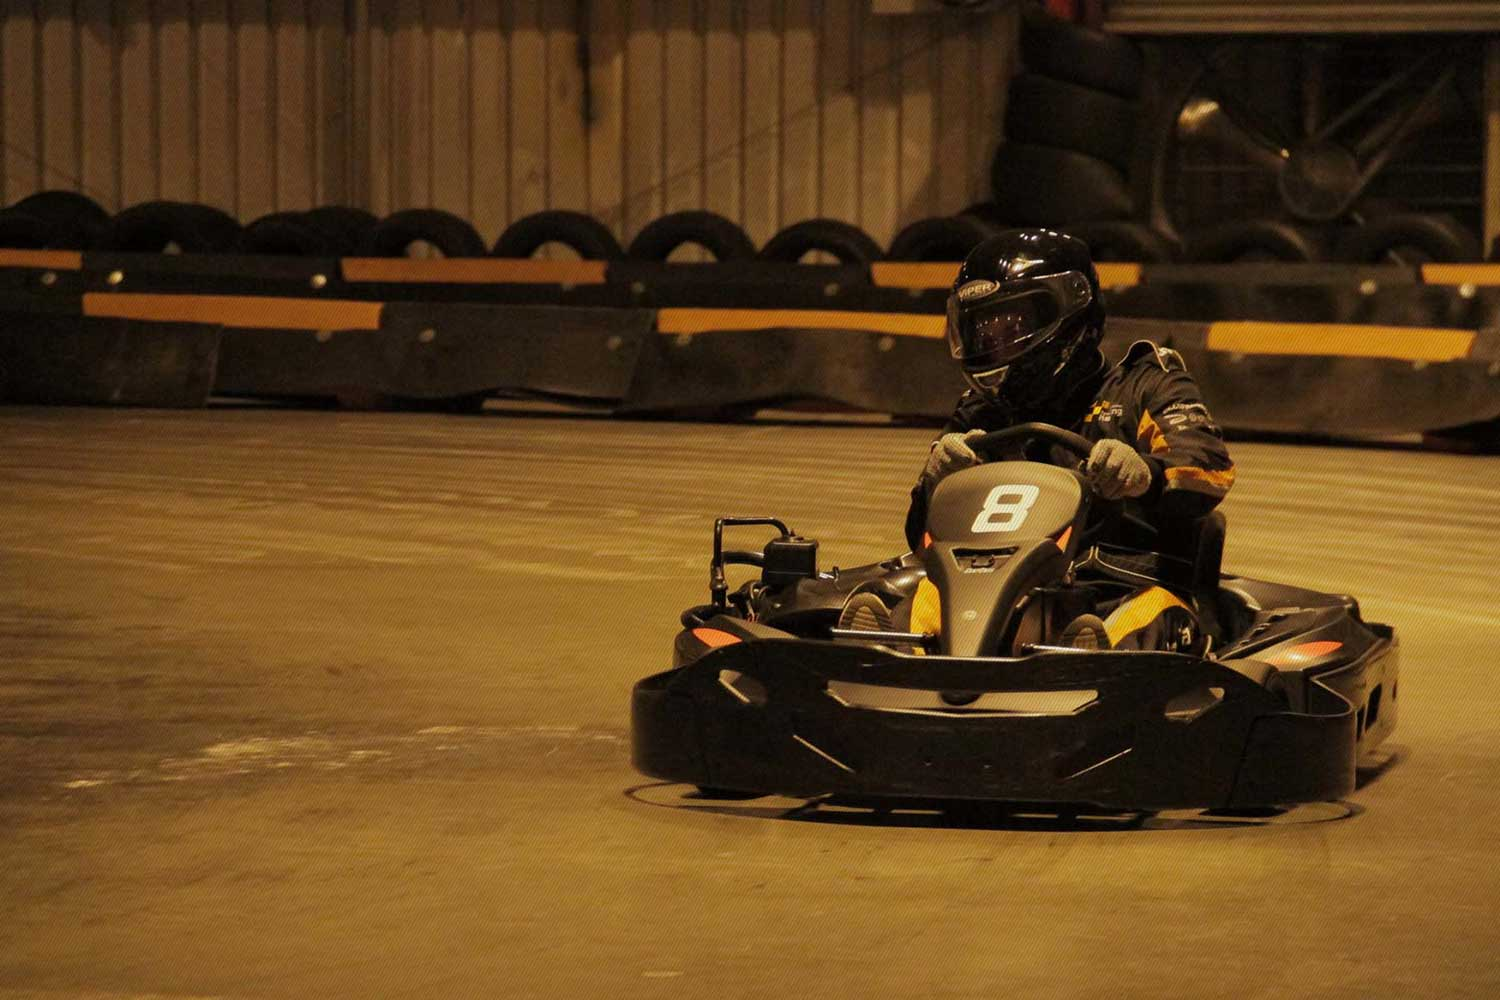 NCE Computer Group Karting